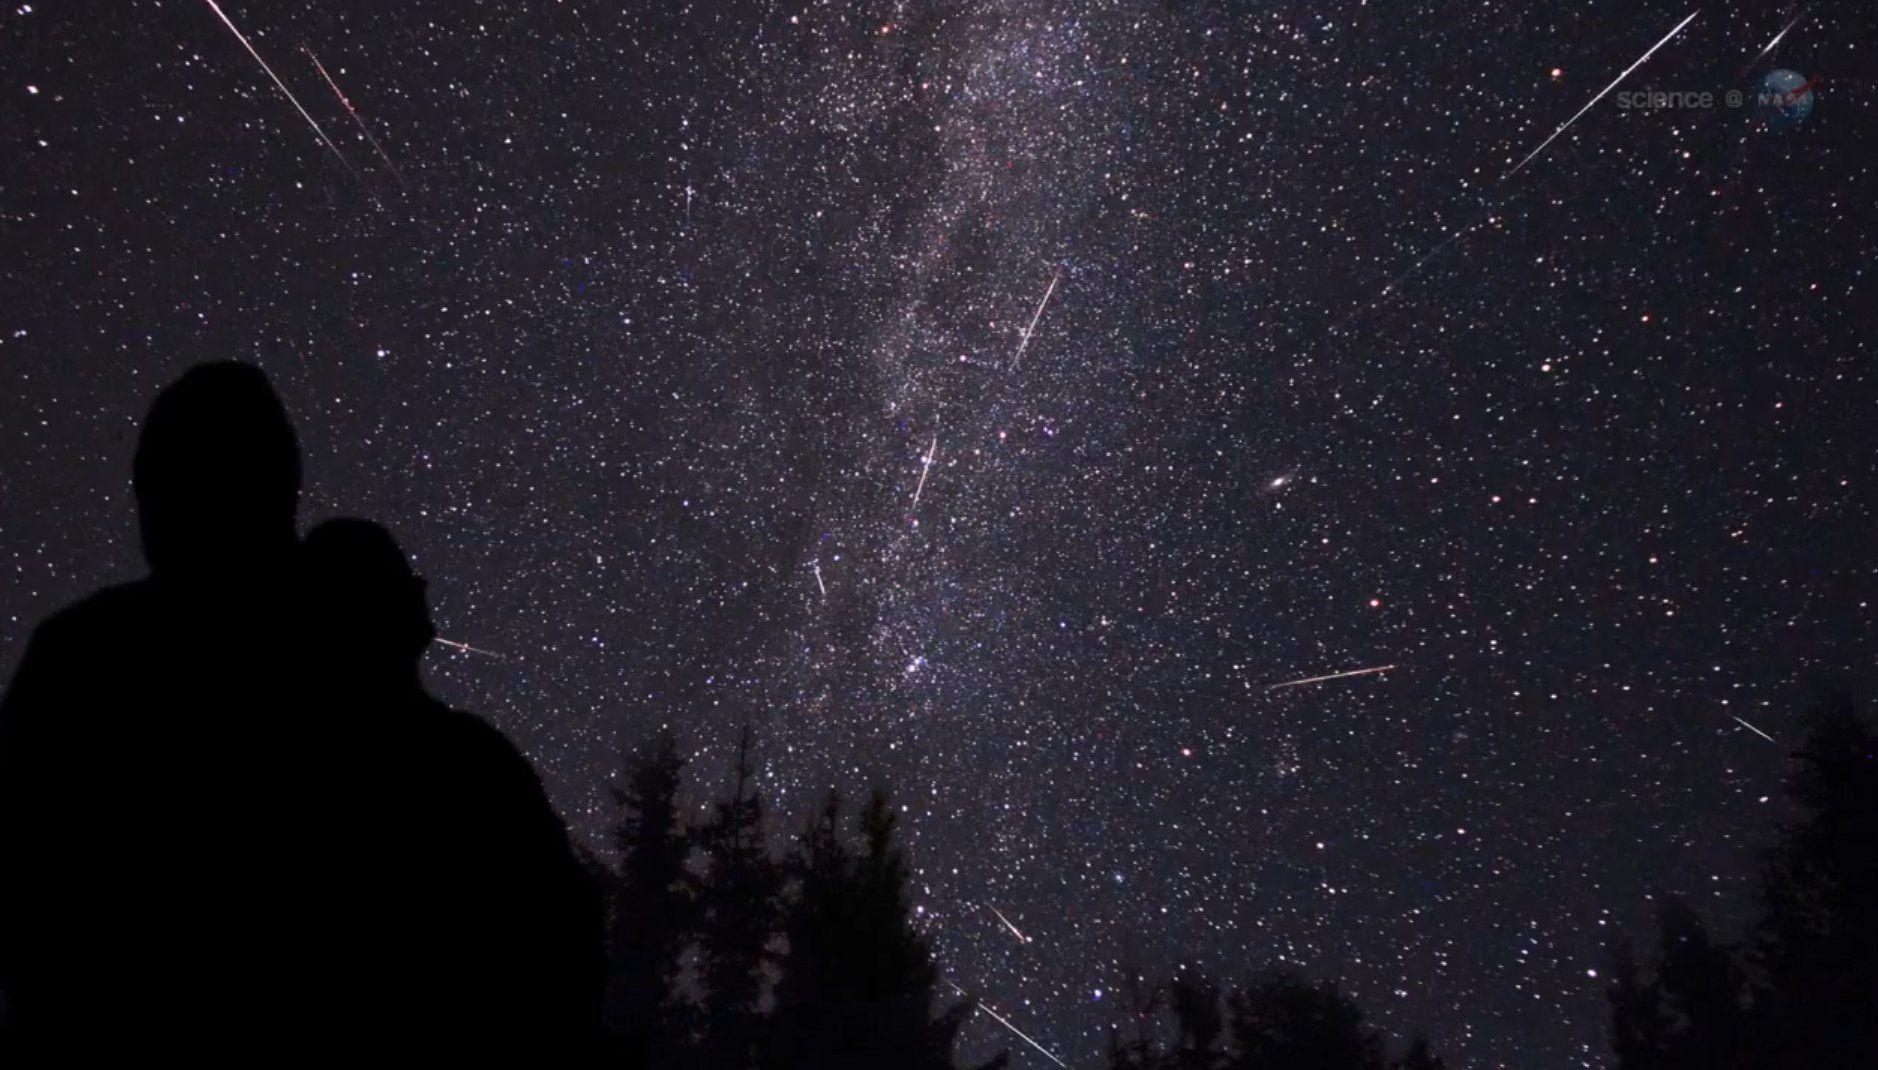 Perseid Meteor Shower - wallpaper.